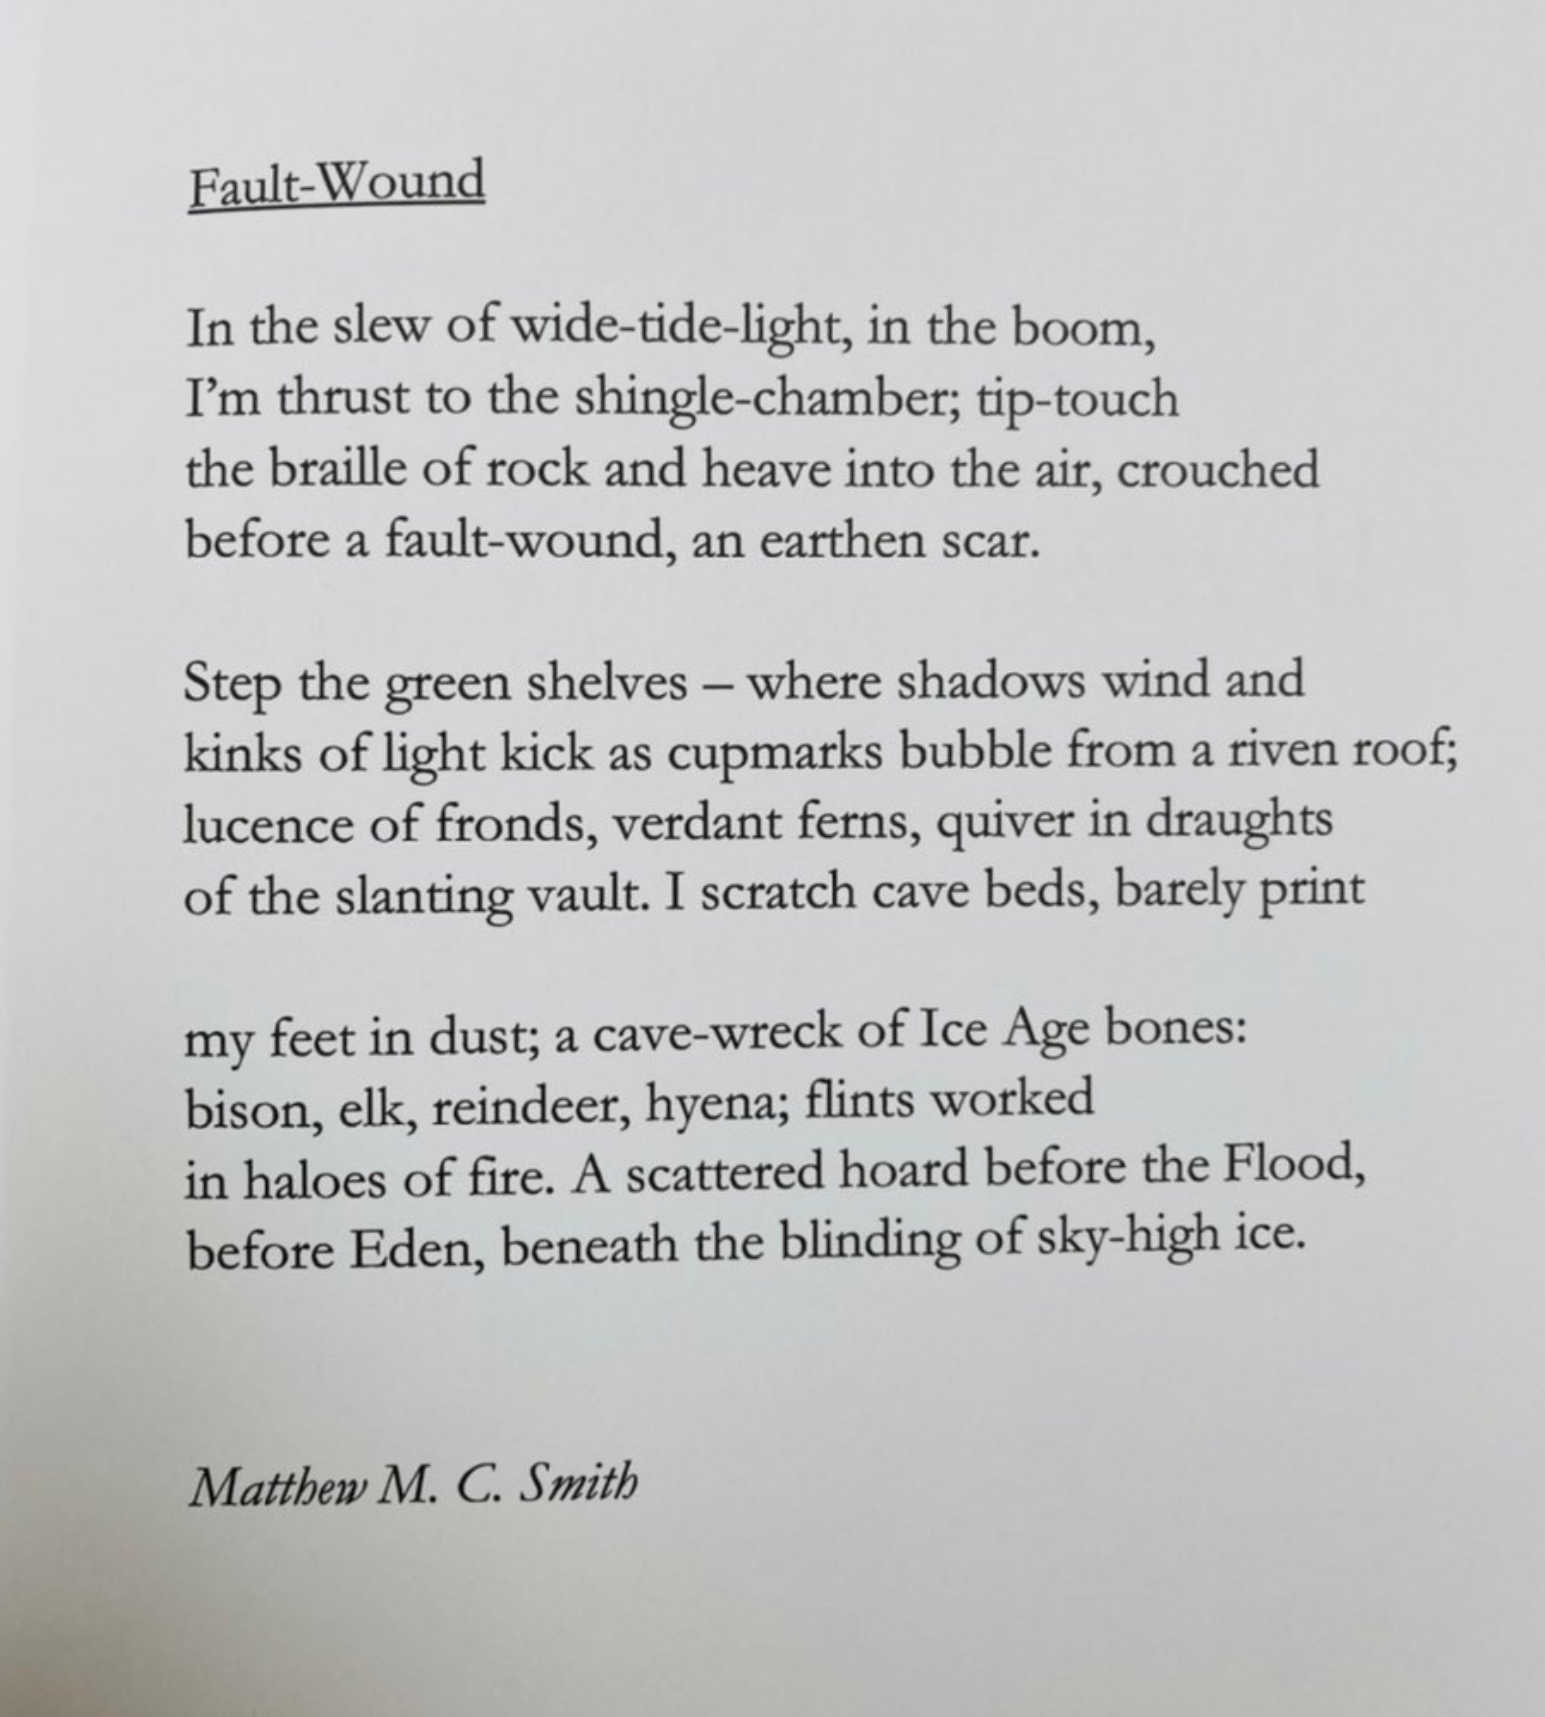 Fault Wound by Matthew MC Smith